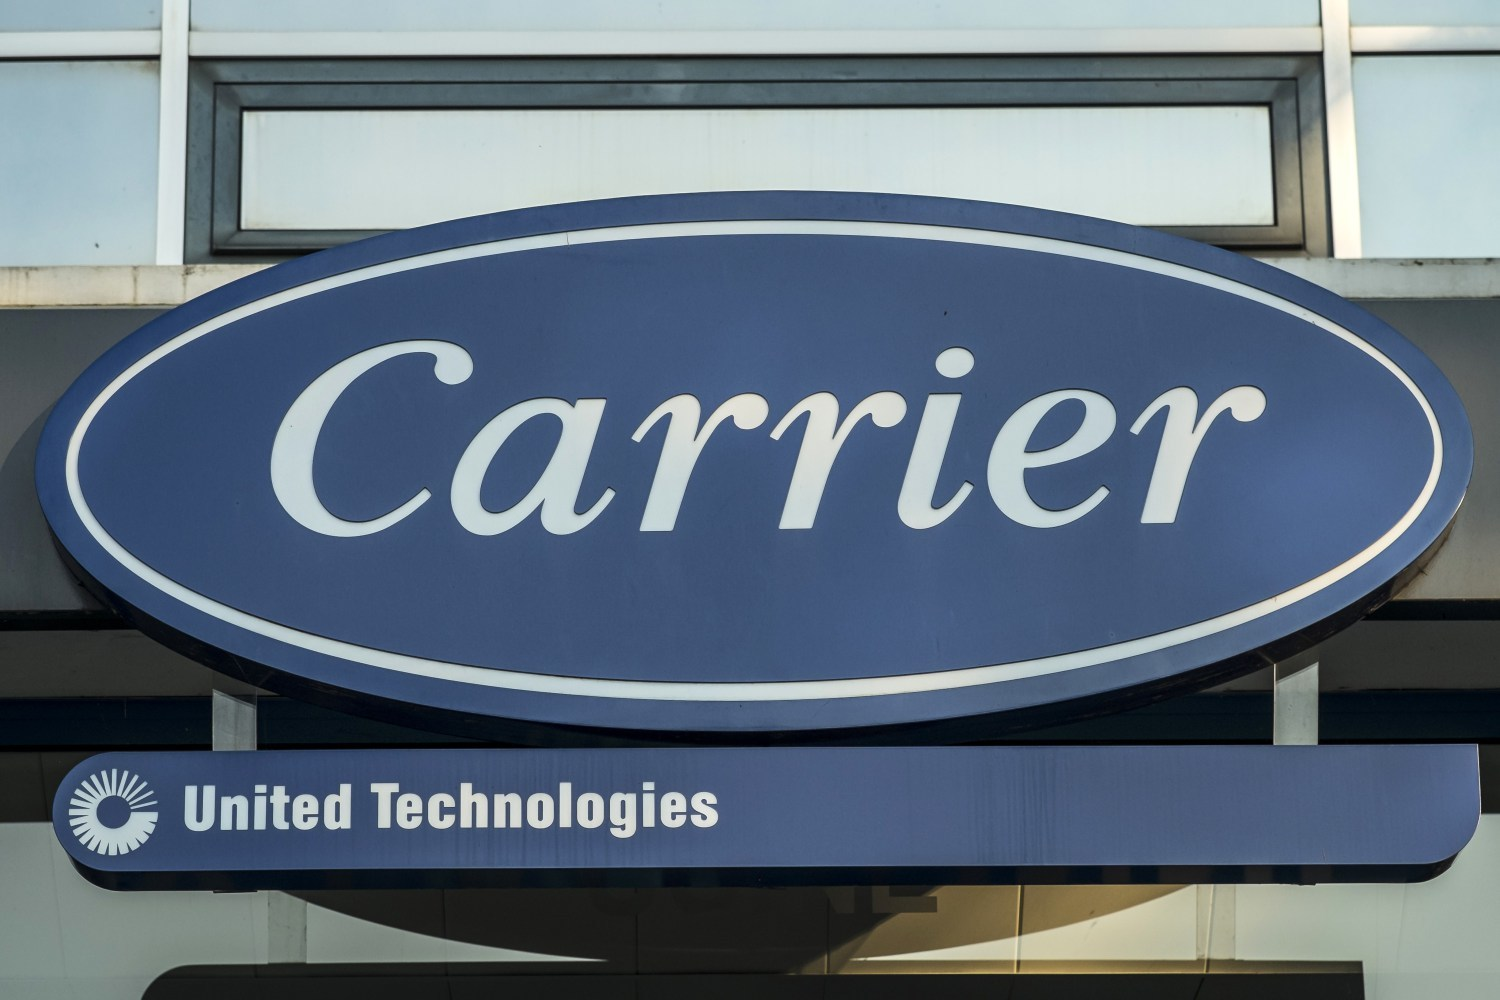 Carrier Corporation